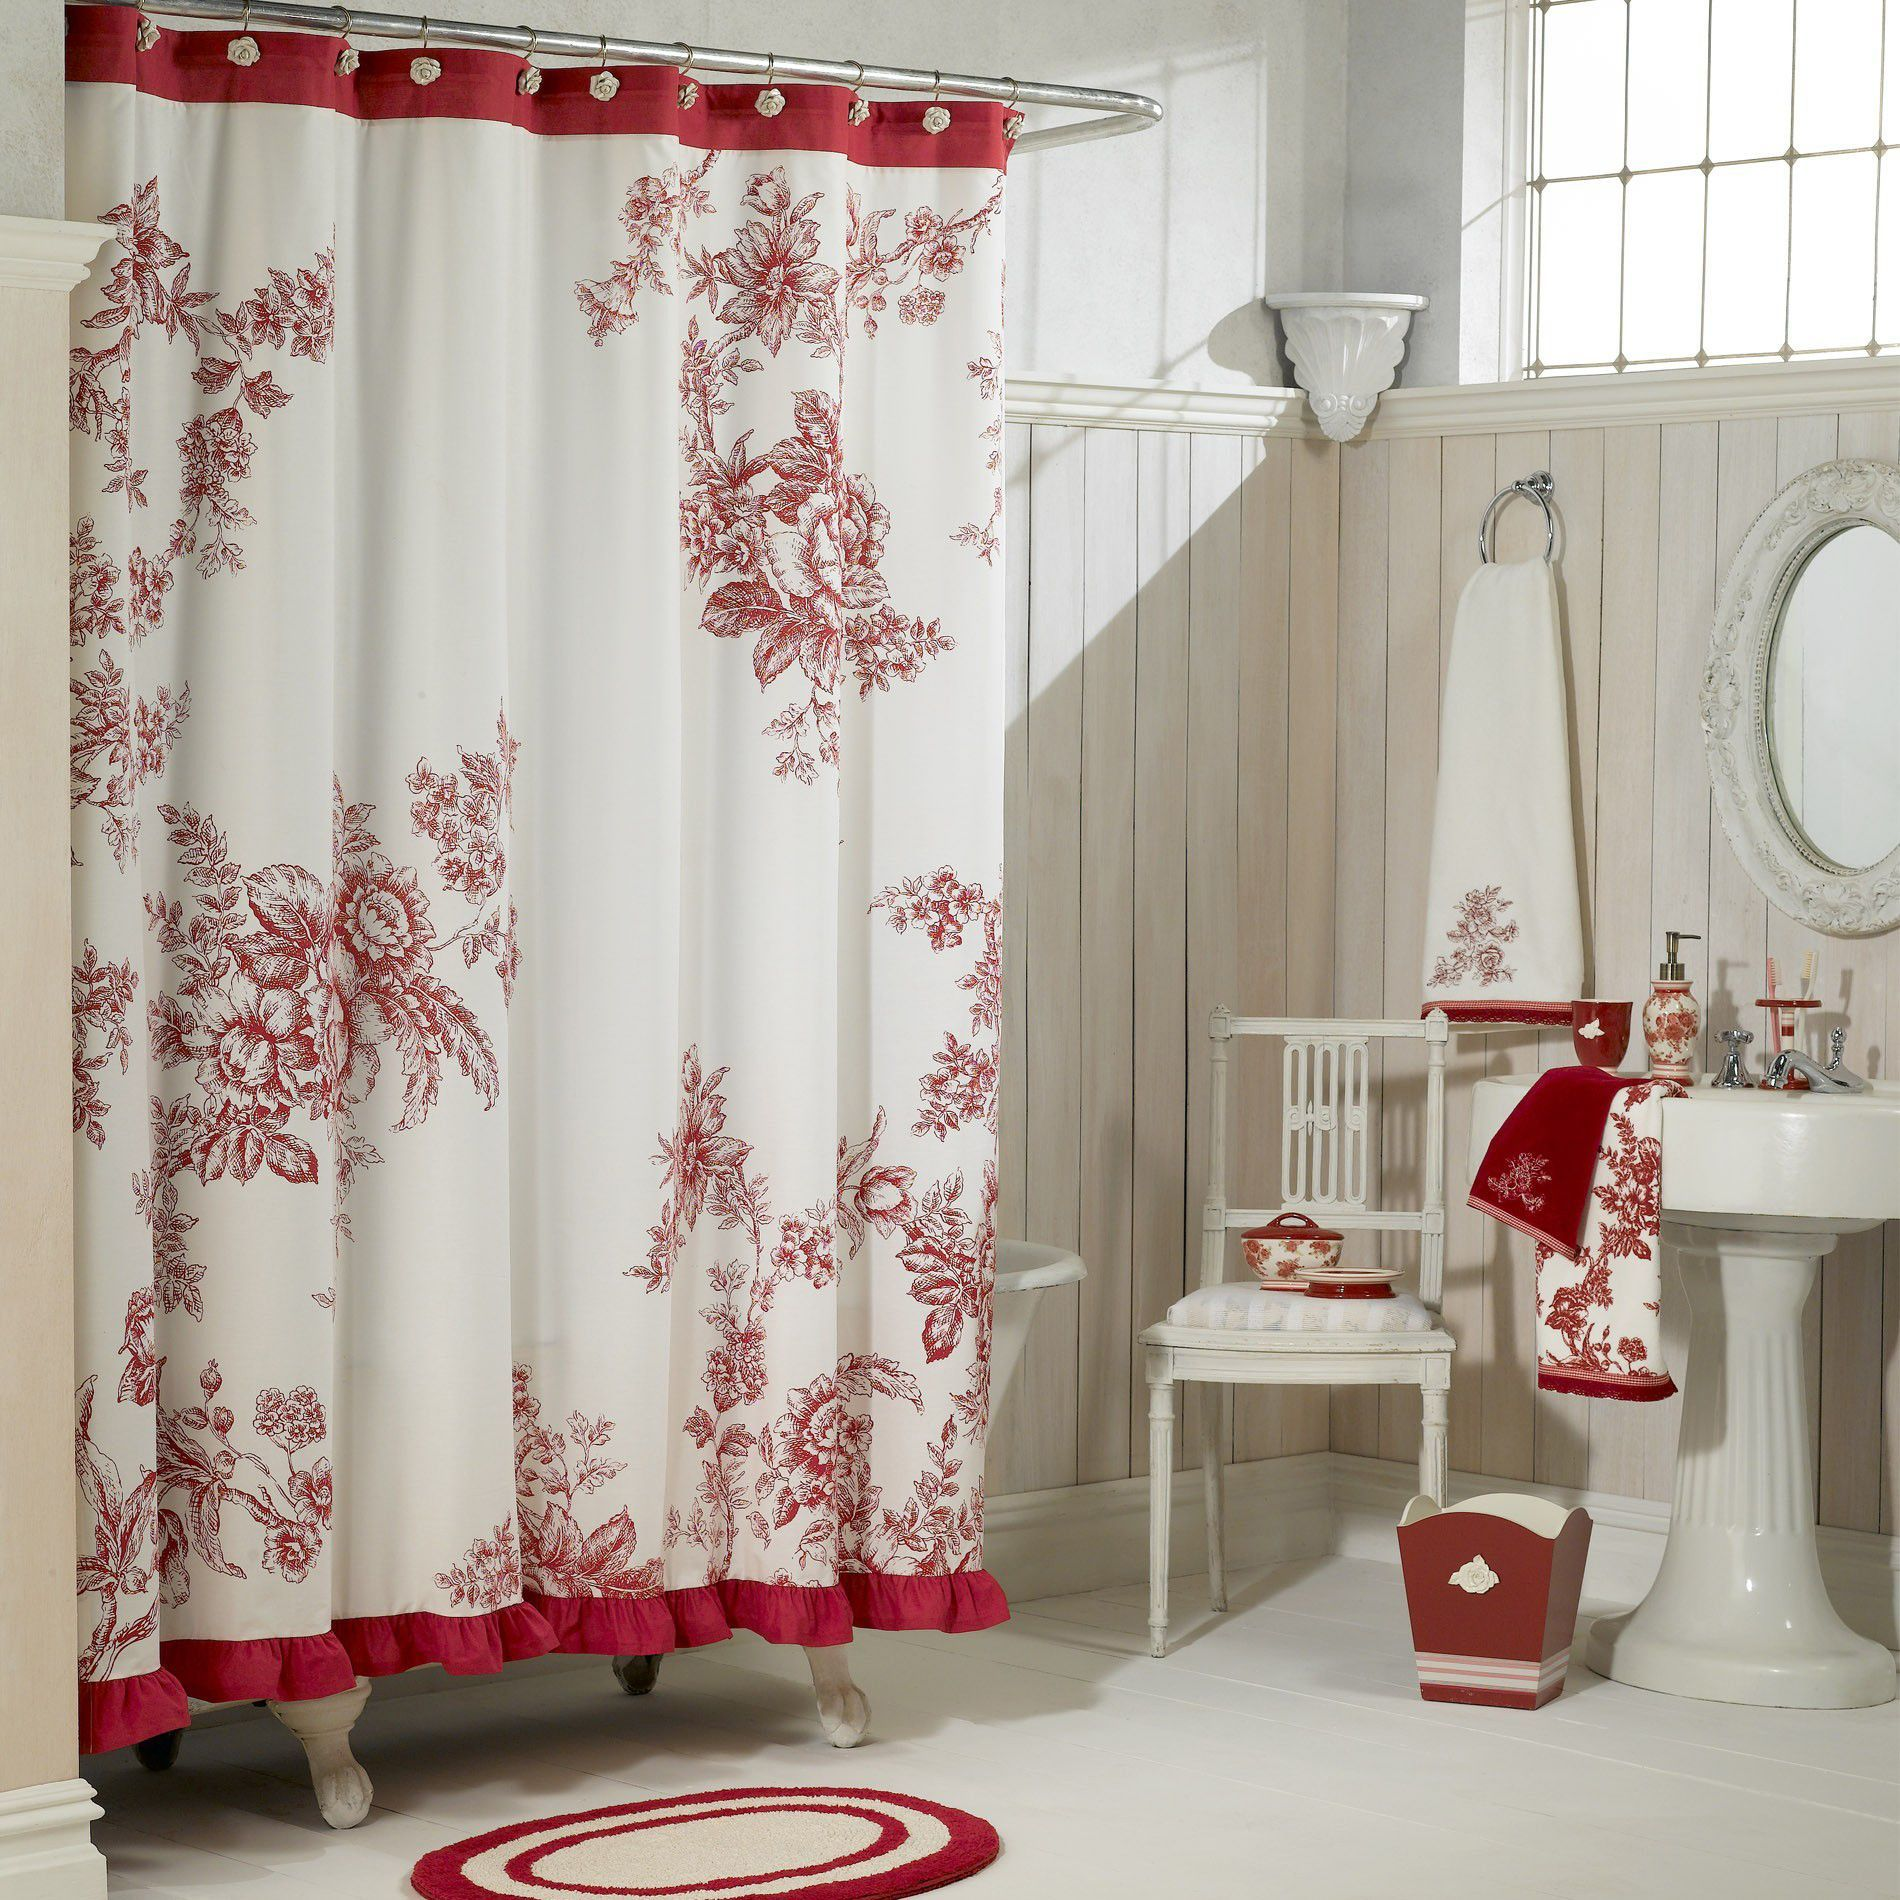 Masculine Retro Shower Curtains Vintage Shower Curtains Country